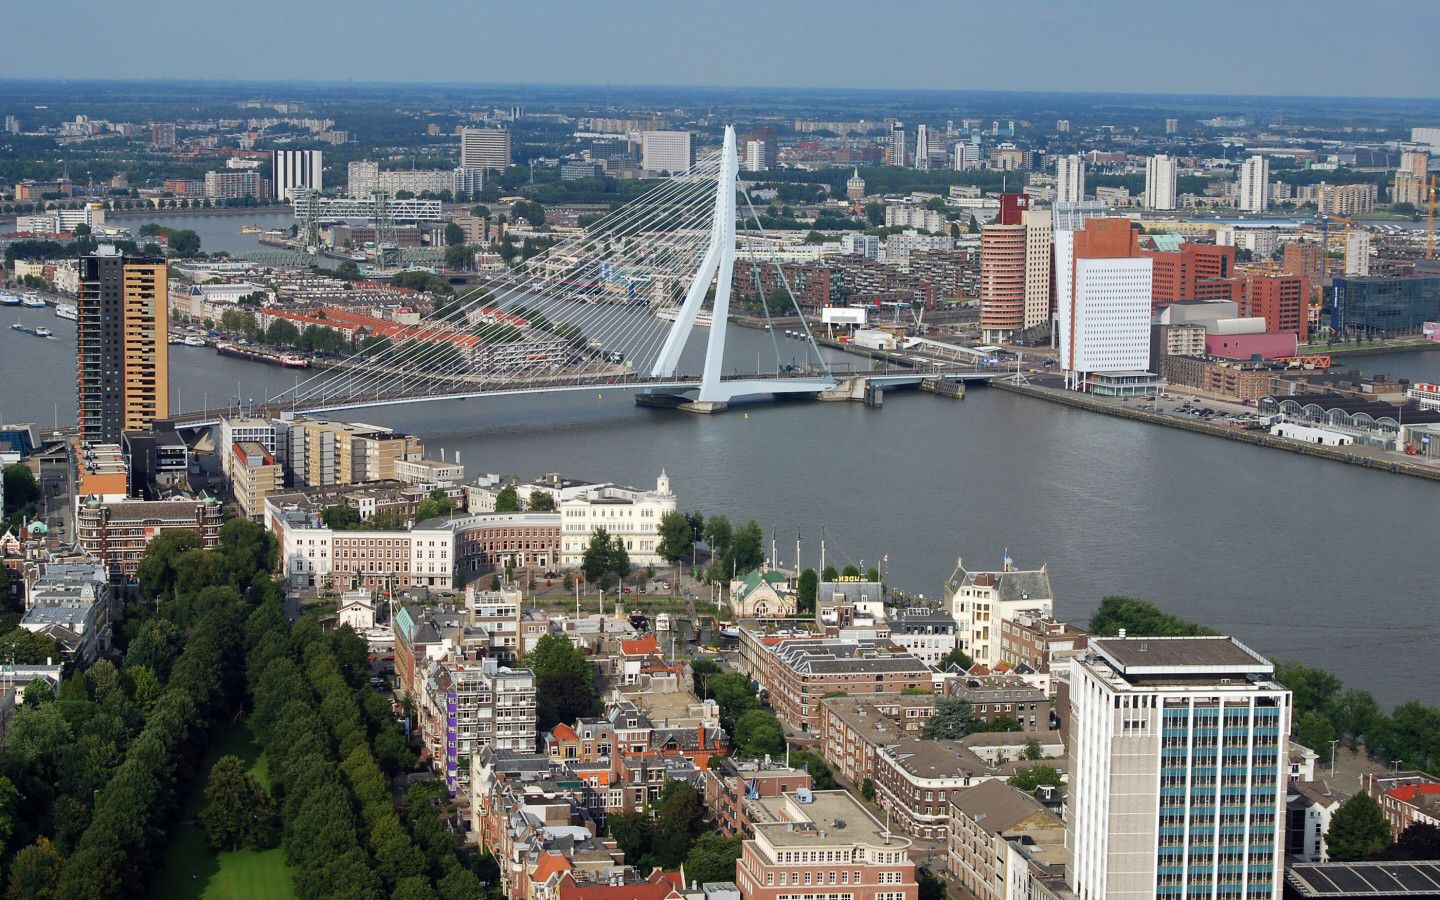 Rotterdam City In Netherlands Rotterdam Is The Second Largest City In The Netherlands And One Of The Largest Port San Francisco Skyline Skyline Travel